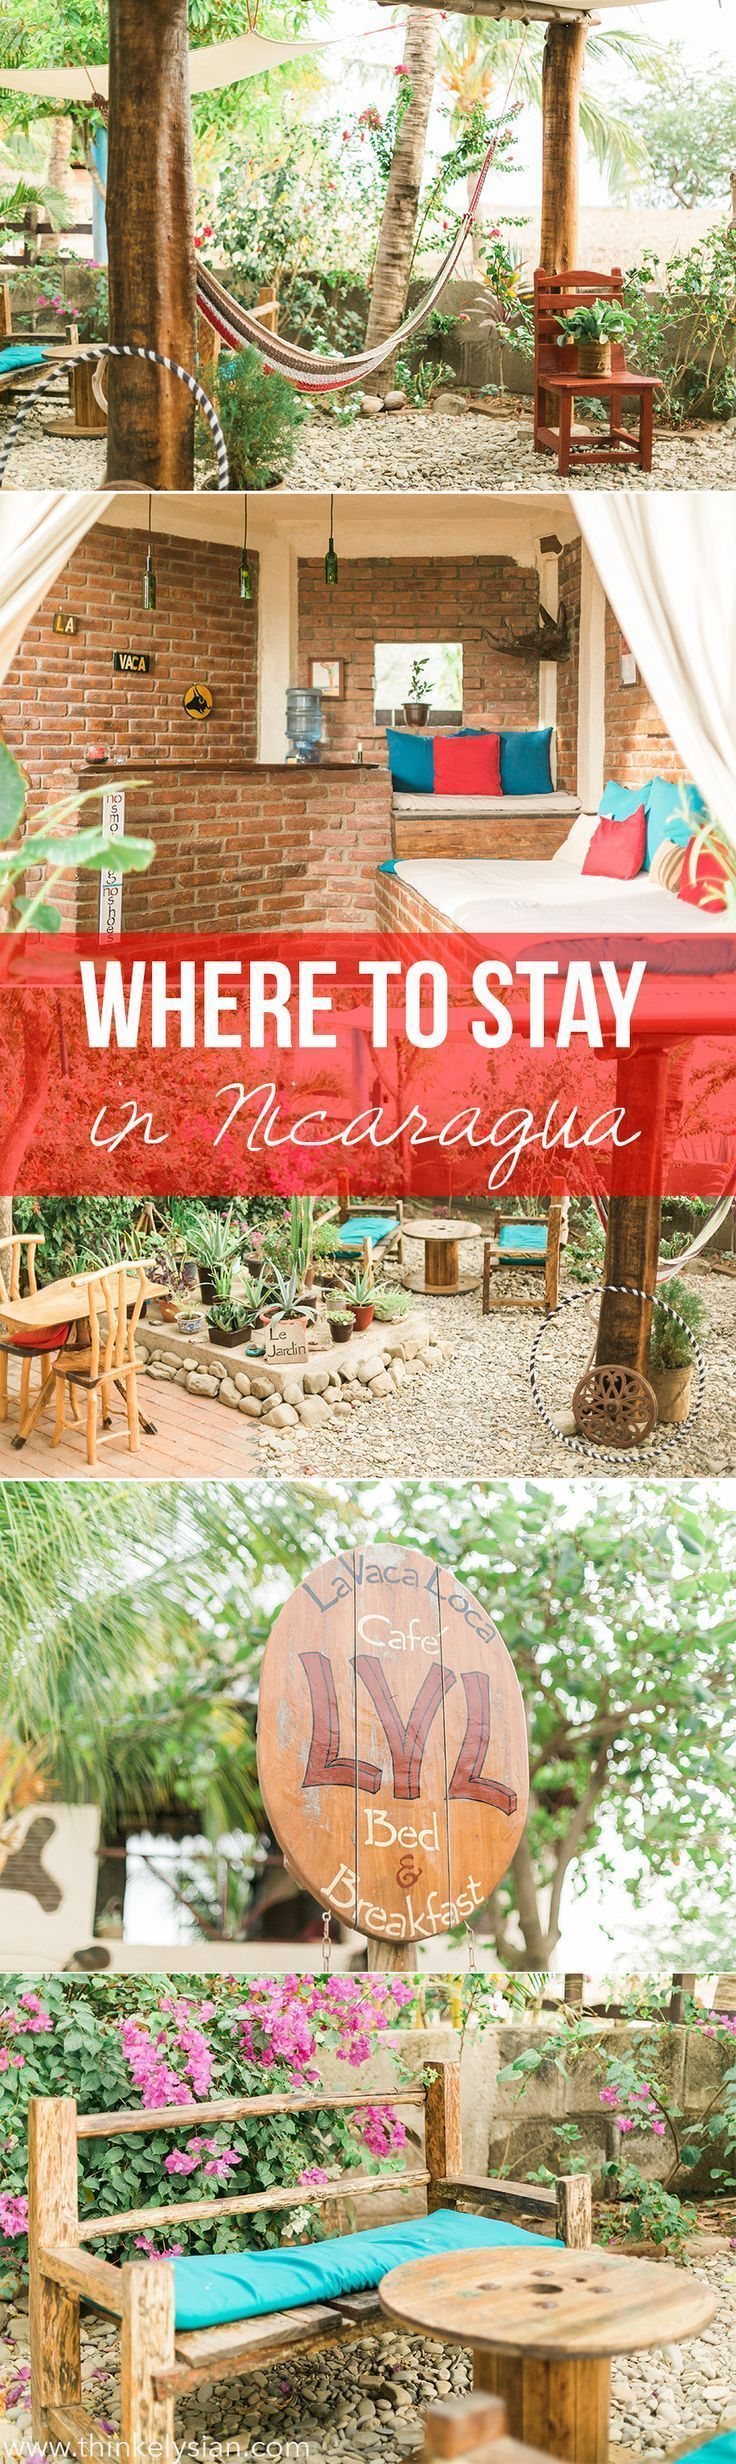 Where to stay in Nicaragua - Our favorite B&B near Popoyo Beach // Where to stay in Nicaragua on http://thinkelysian.com